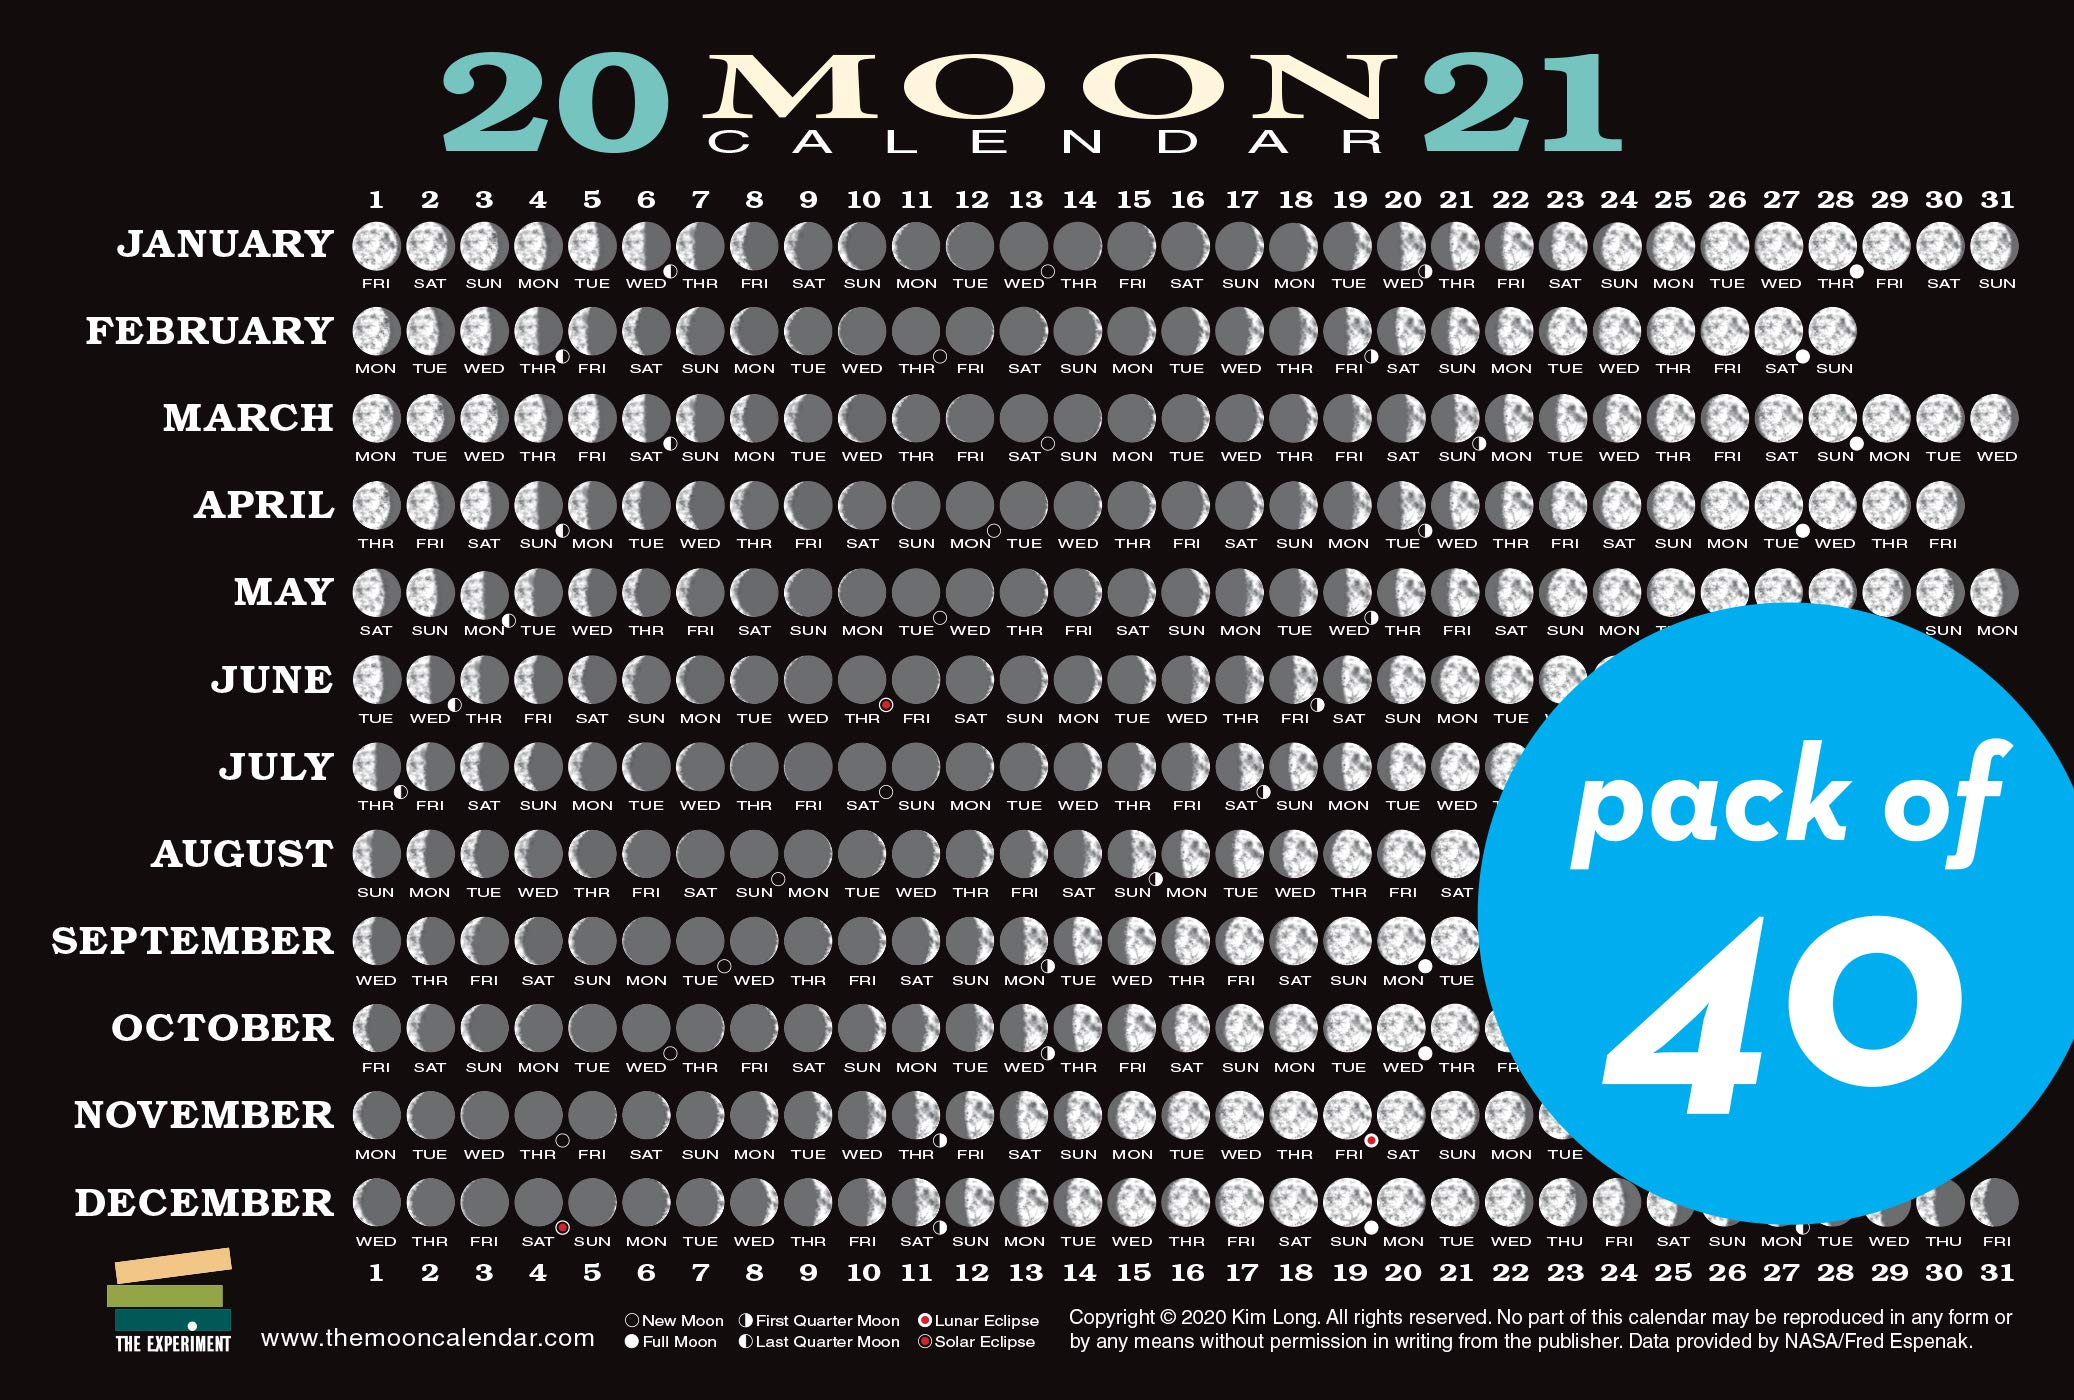 Moon Cycle Calendar 2021 2021 Moon Calendar Card (40 pack): Lunar Phases, Eclipses, and